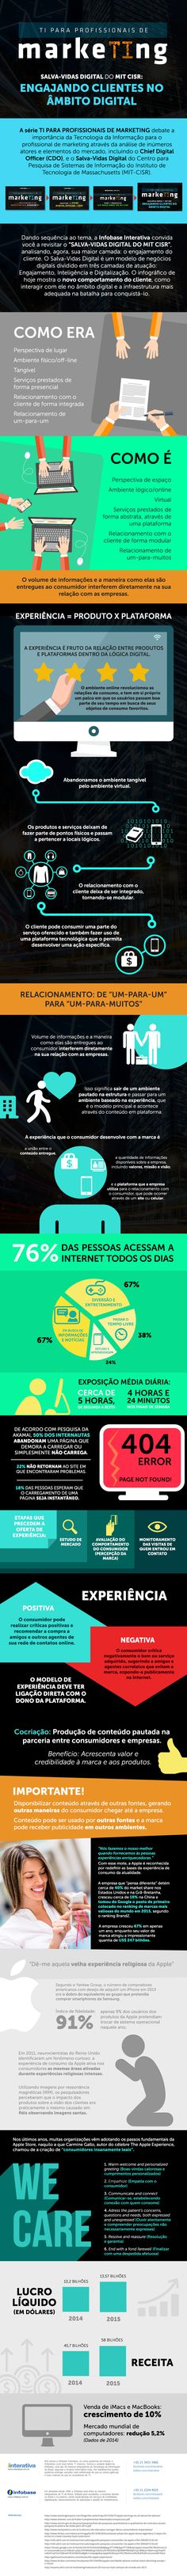 Infográfico – Salva-vidas Digital do MIT CISR: Engajando Clientes no Âmbito Digital via:iinterativa #marketindigital #brasil #modernistablog